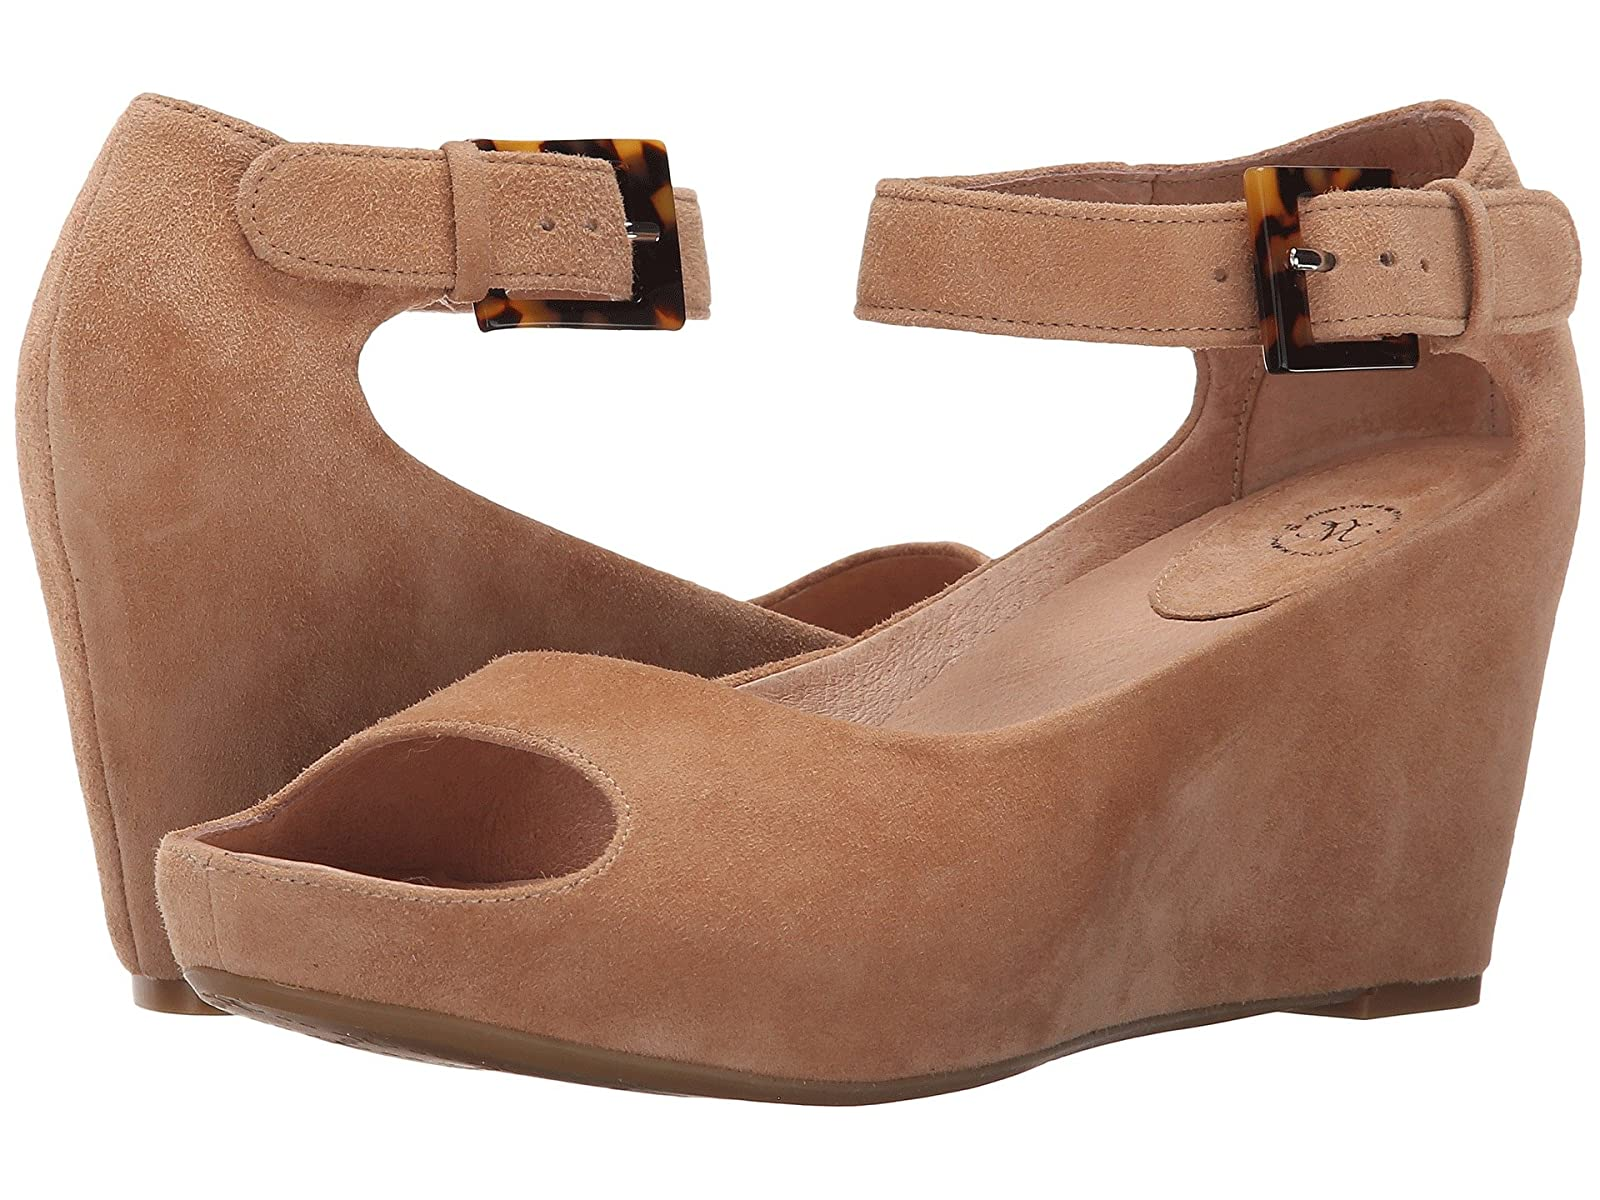 Johnston & Murphy Tricia Ankle StrapCheap and distinctive eye-catching shoes